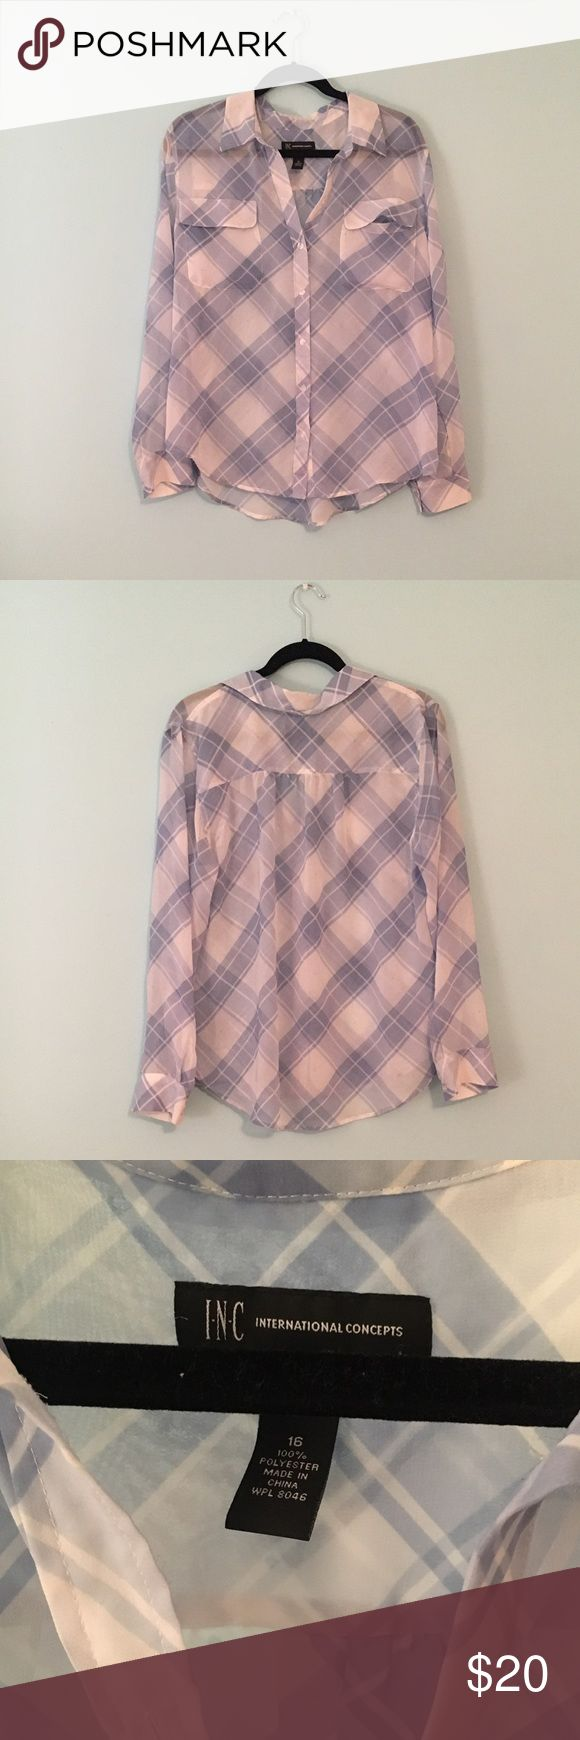 INC plaid chiffon button down top Near new condition. See-thru chiffon material, so wear a blue or white tank top with it or bandeau. Flowy and feminine. INC International Concepts Tops Button Down Shirts